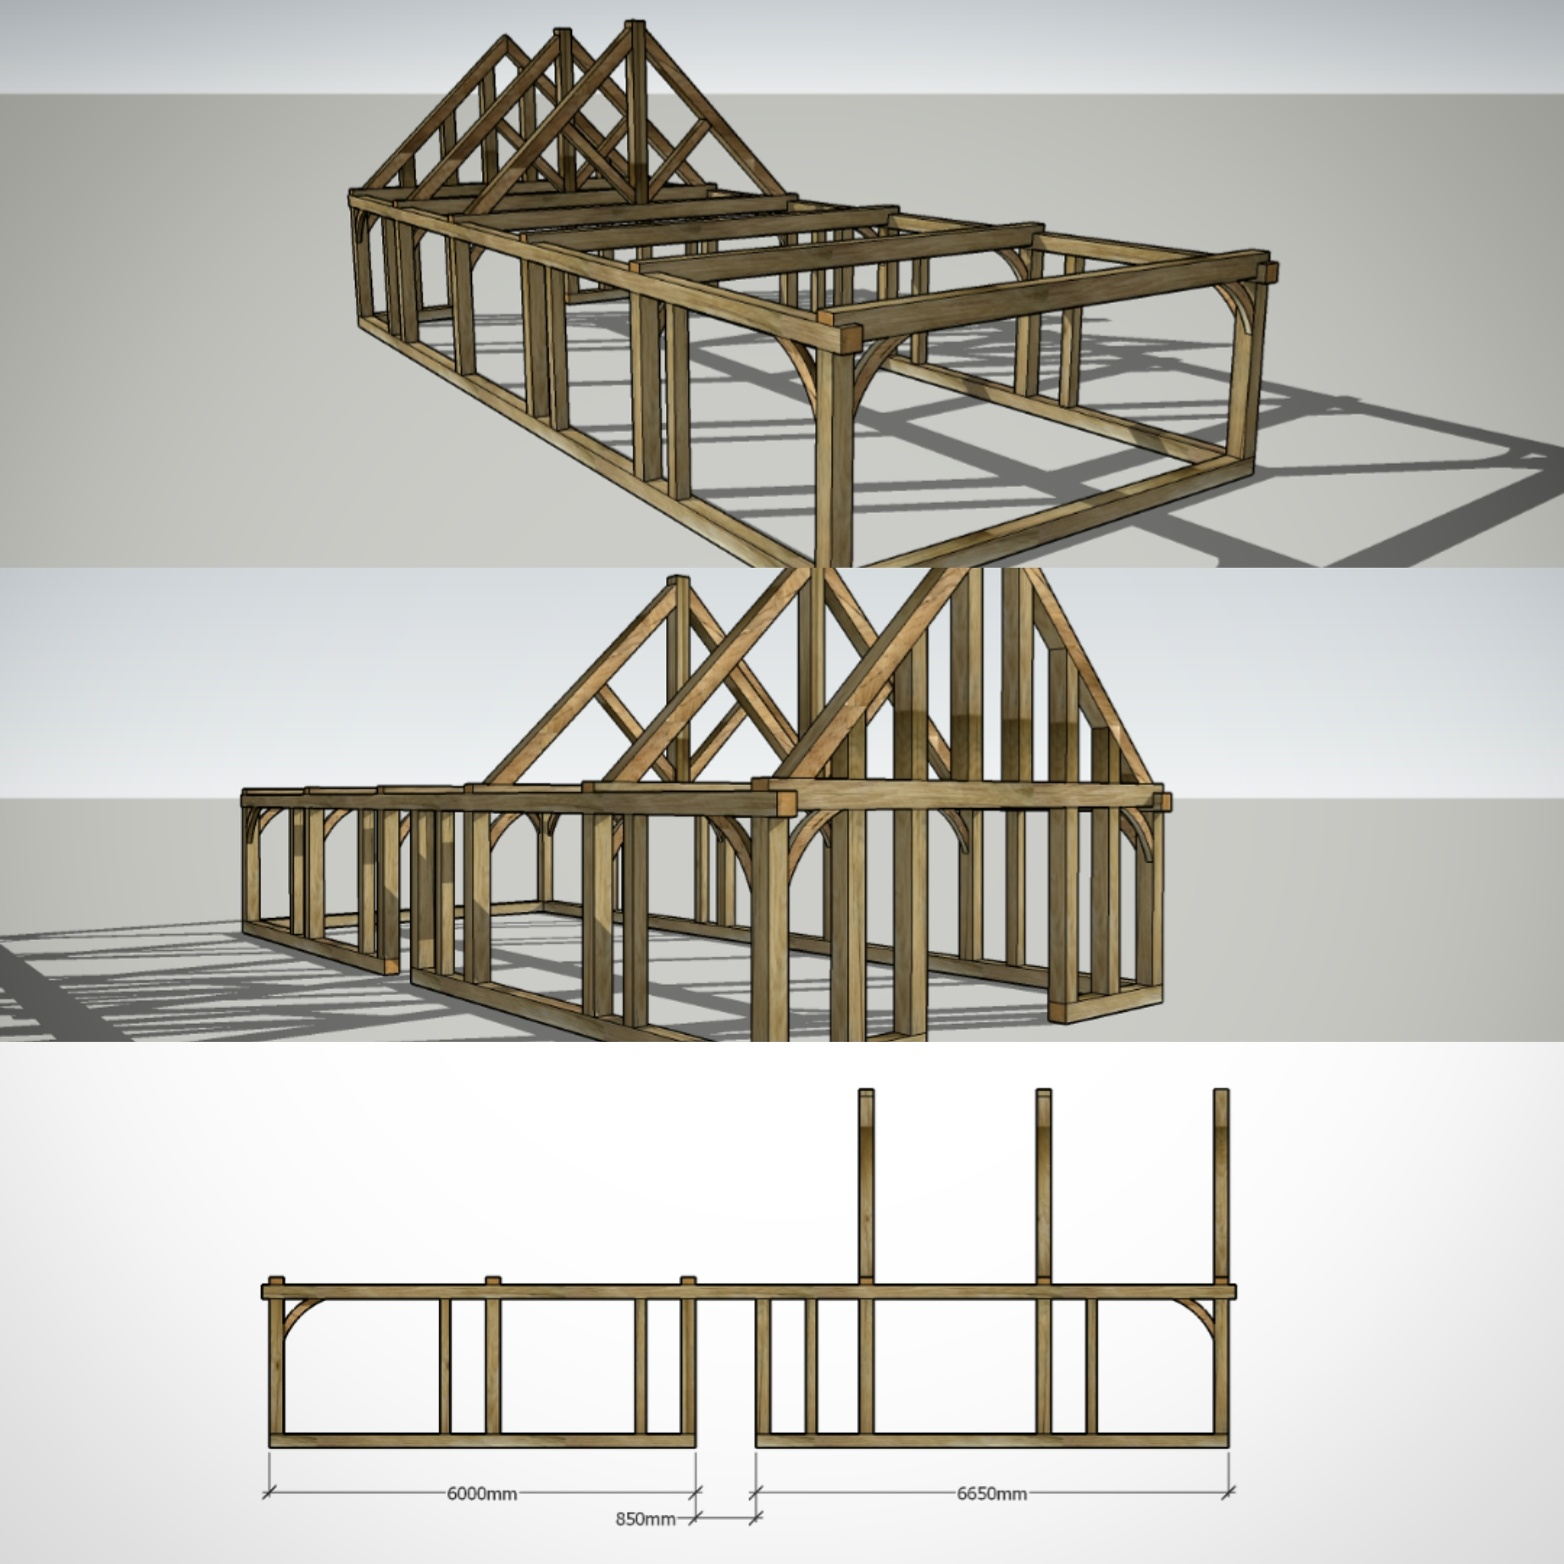 Oak framed building design